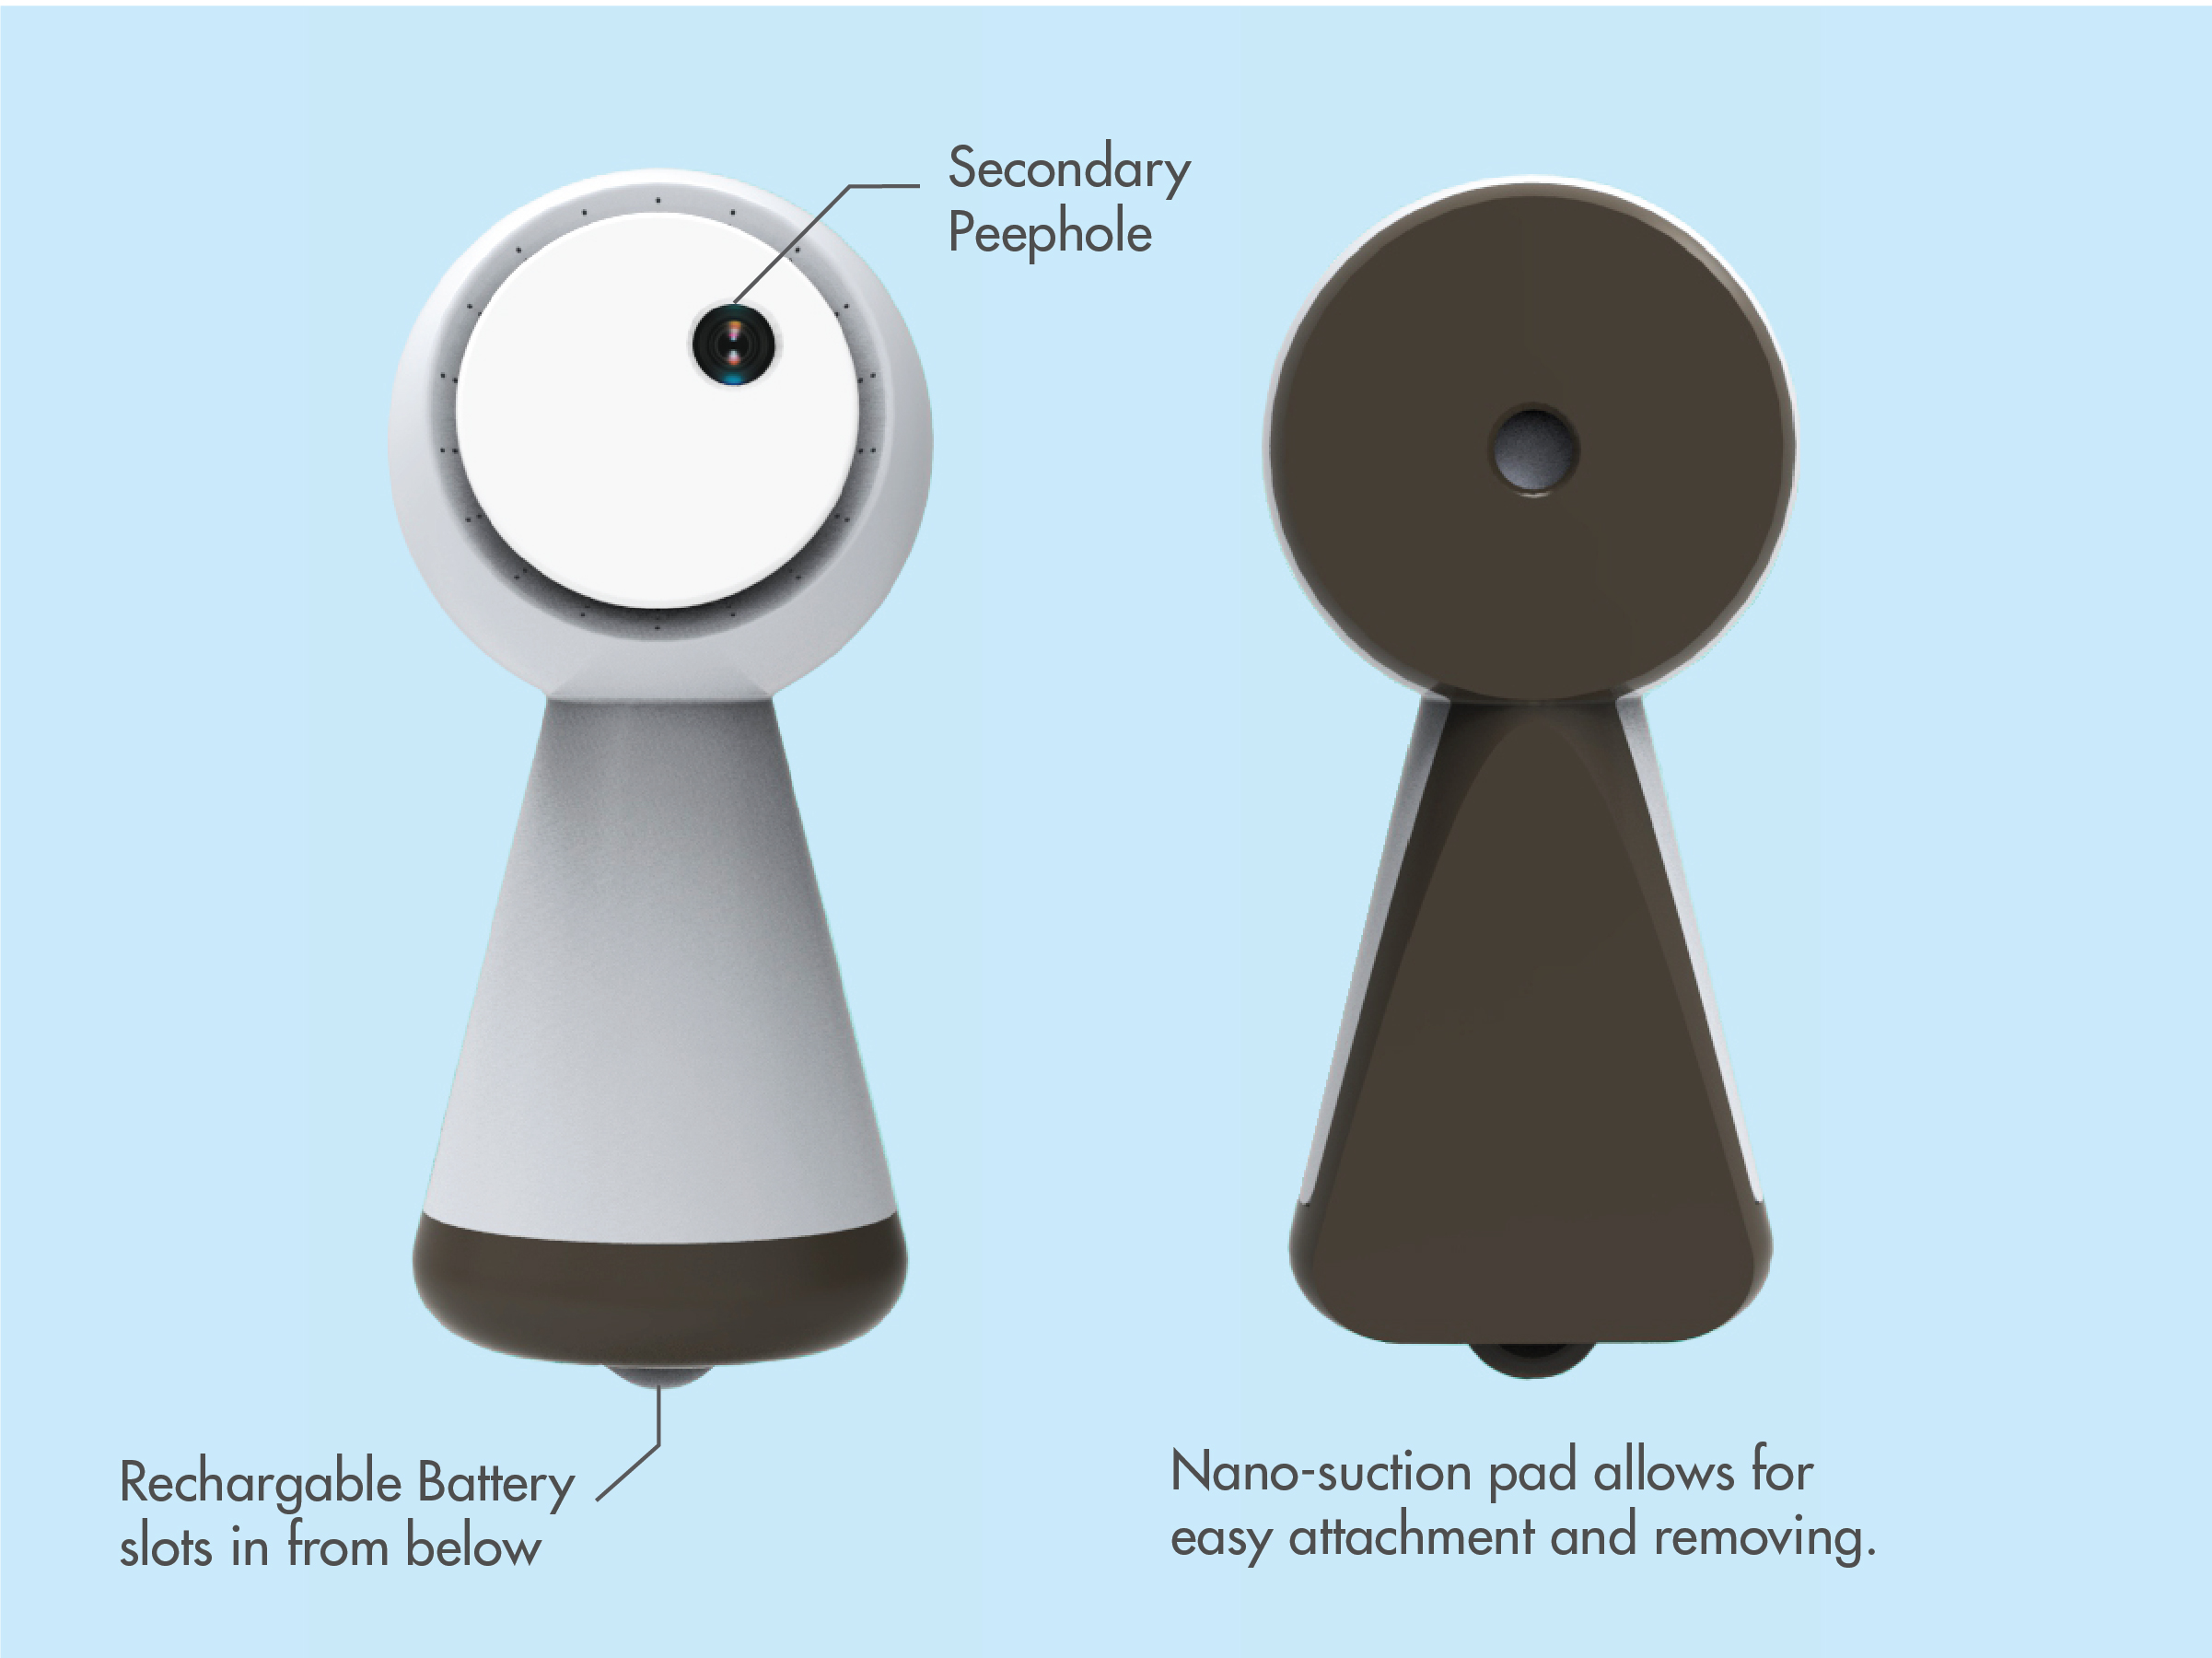 This camera is designed to be placed on the front door and look outwards through the peephole. Users can still peep through the secondary peephole on the product. -